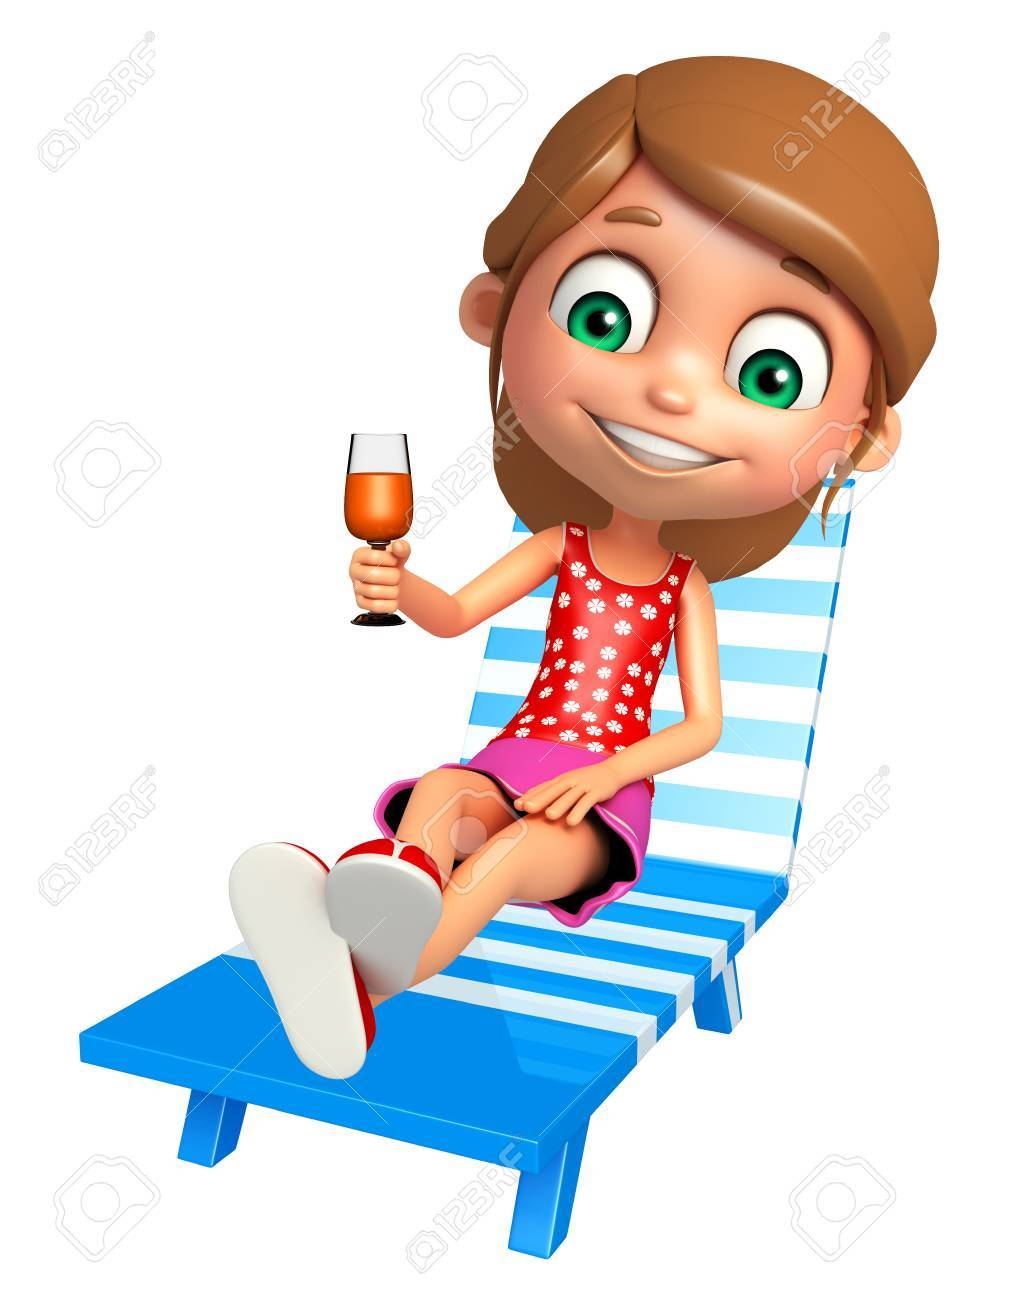 Kid Girl With Beach Chair And Juice Glass Stock Photo Picture And Royalty Free Image Image 65975953